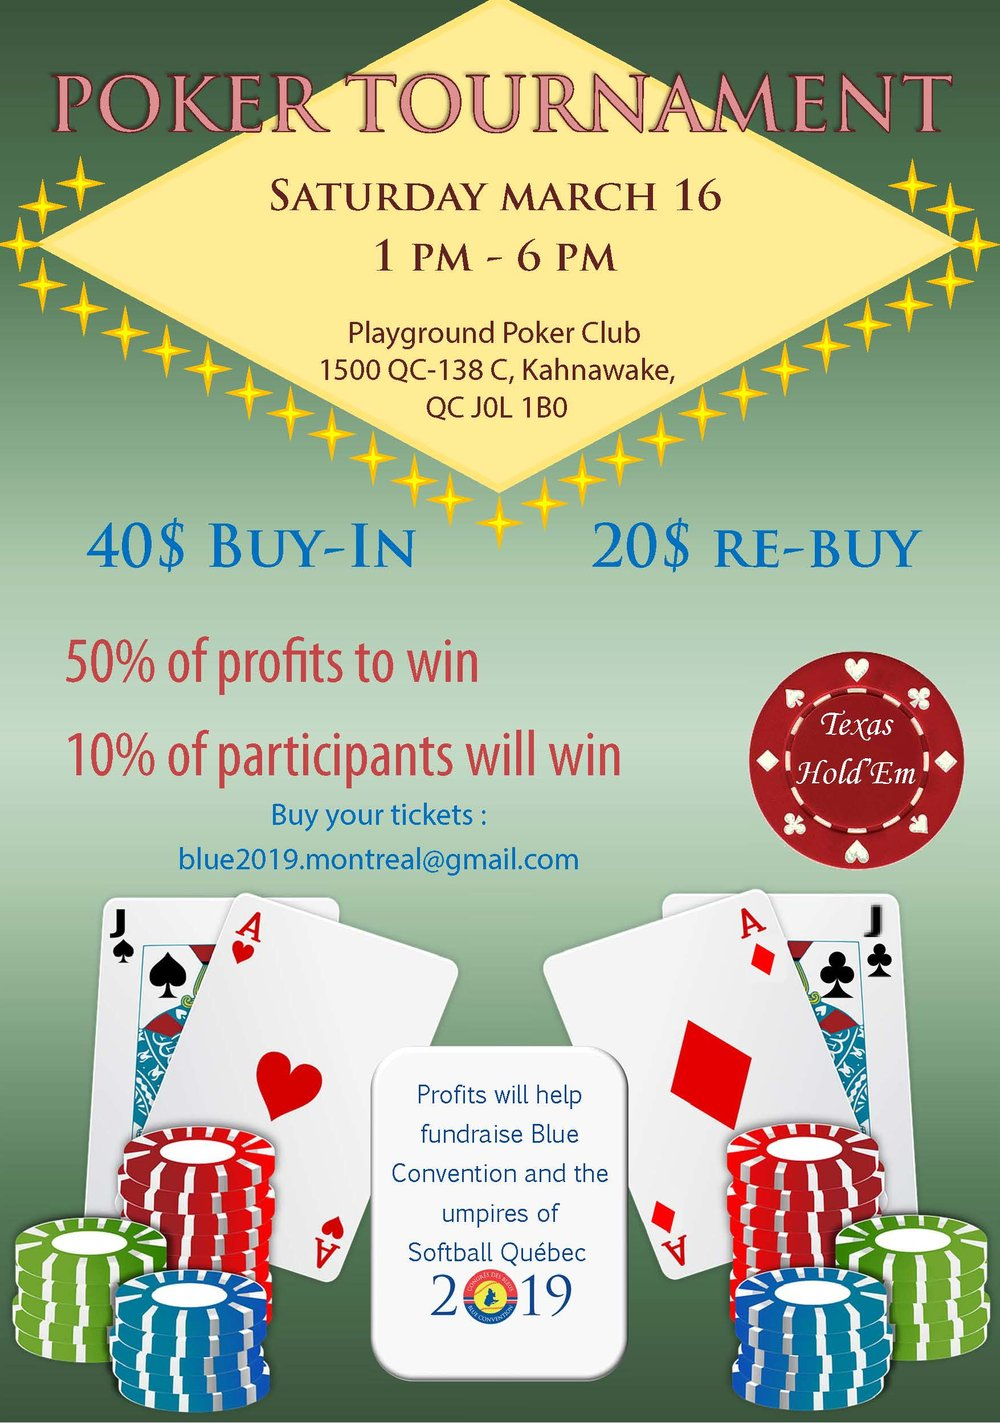 Poker Tournament - On March 16, join us at our Texas Hold'Em Poker Tournament to help finance Blue COnvention 2019. Buy-Ins are $40 Re-buys will be available for $20. 50% of the profits are to be won, and10% of participants will be winners! Where: Playground Poker Club, 1500 Qc-138 C, Kahnawake, Qc J0L 1B0Date: Saturday, March 16, 2019Time: 1 PM to 6 PMTo buy tickets: blue2019.montreal@gmail.com